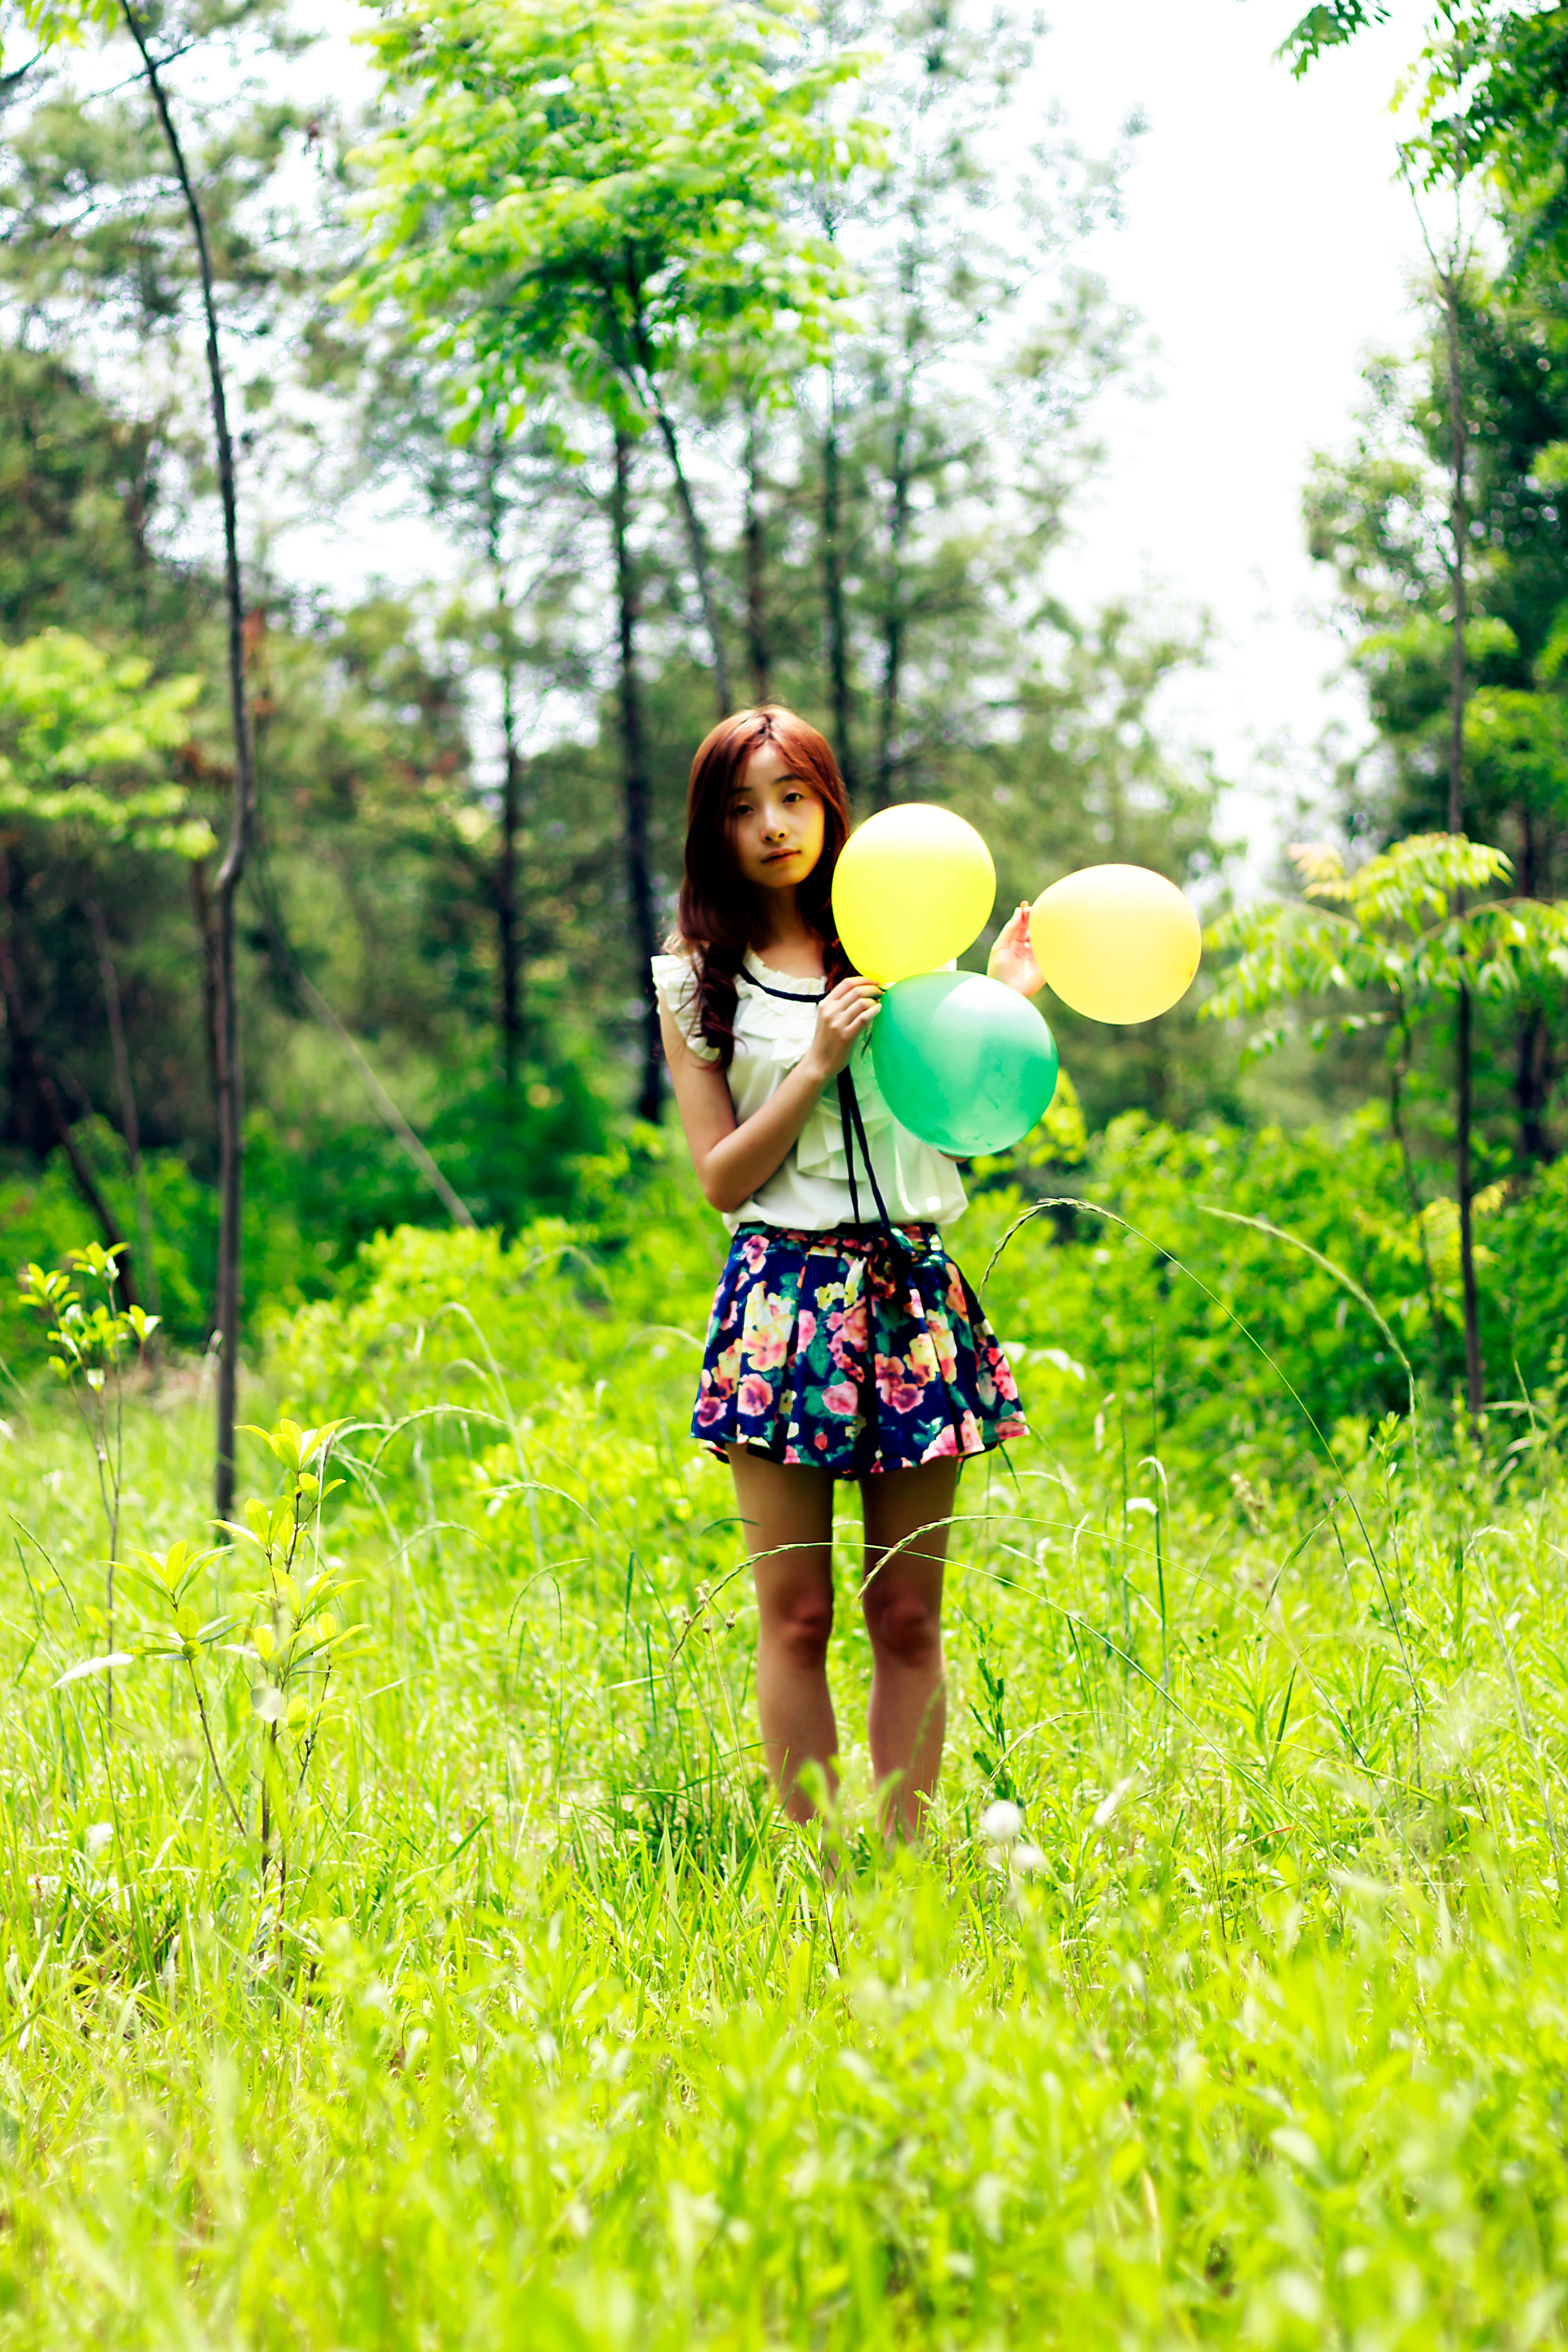 Woman Standing on Grass Field While Holding Three Balloons, Balloons, Daylight, Girl, Grass, HQ Photo